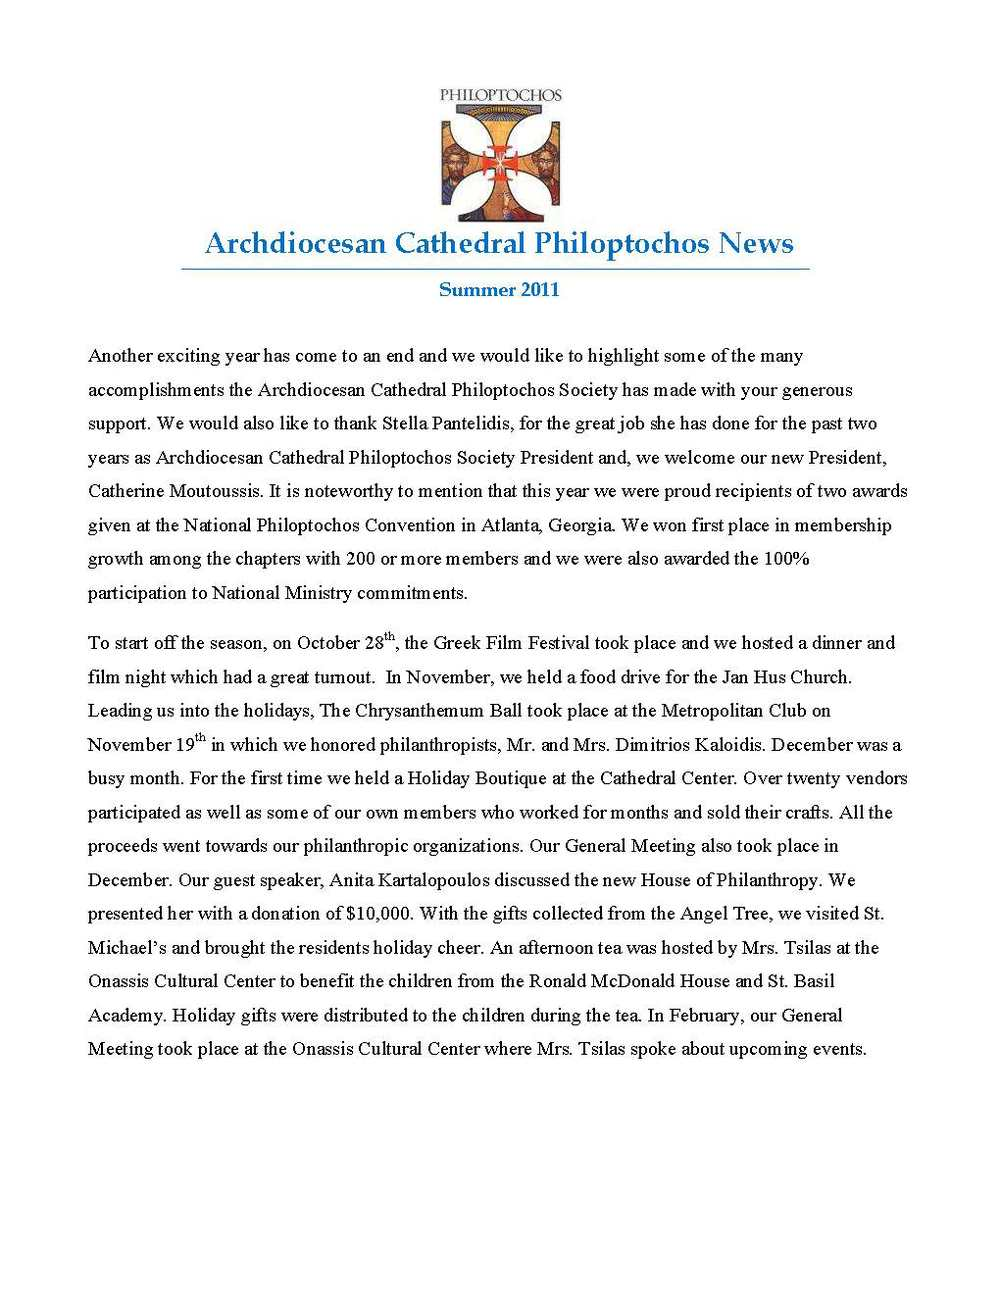 A - Summer 2011 Newsletter_Page_1.jpg